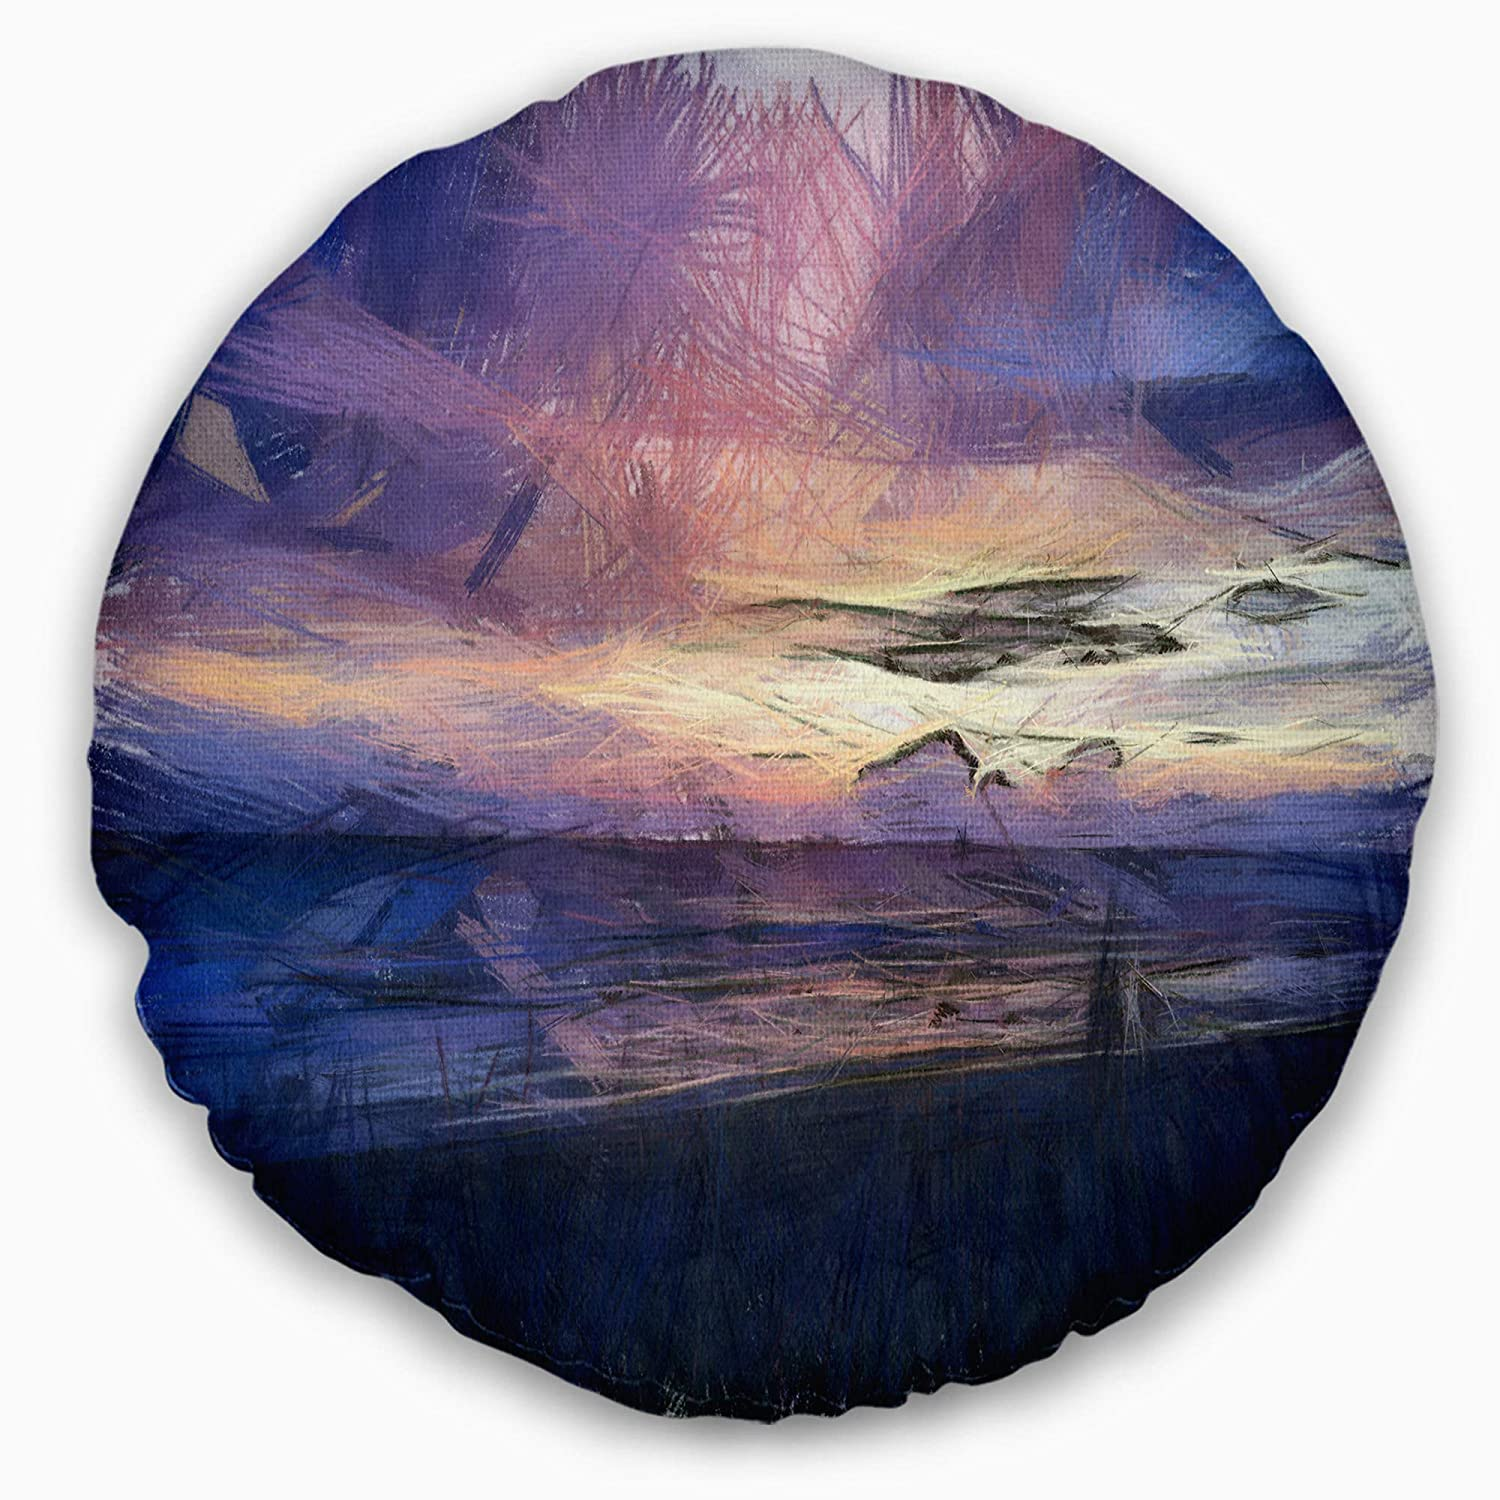 Sofa Throw Pillow 20 Designart CU13578-20-20-C Sunset Over Blue Sea Watercolor Landscape Printed Round Cushion Cover for Living Room